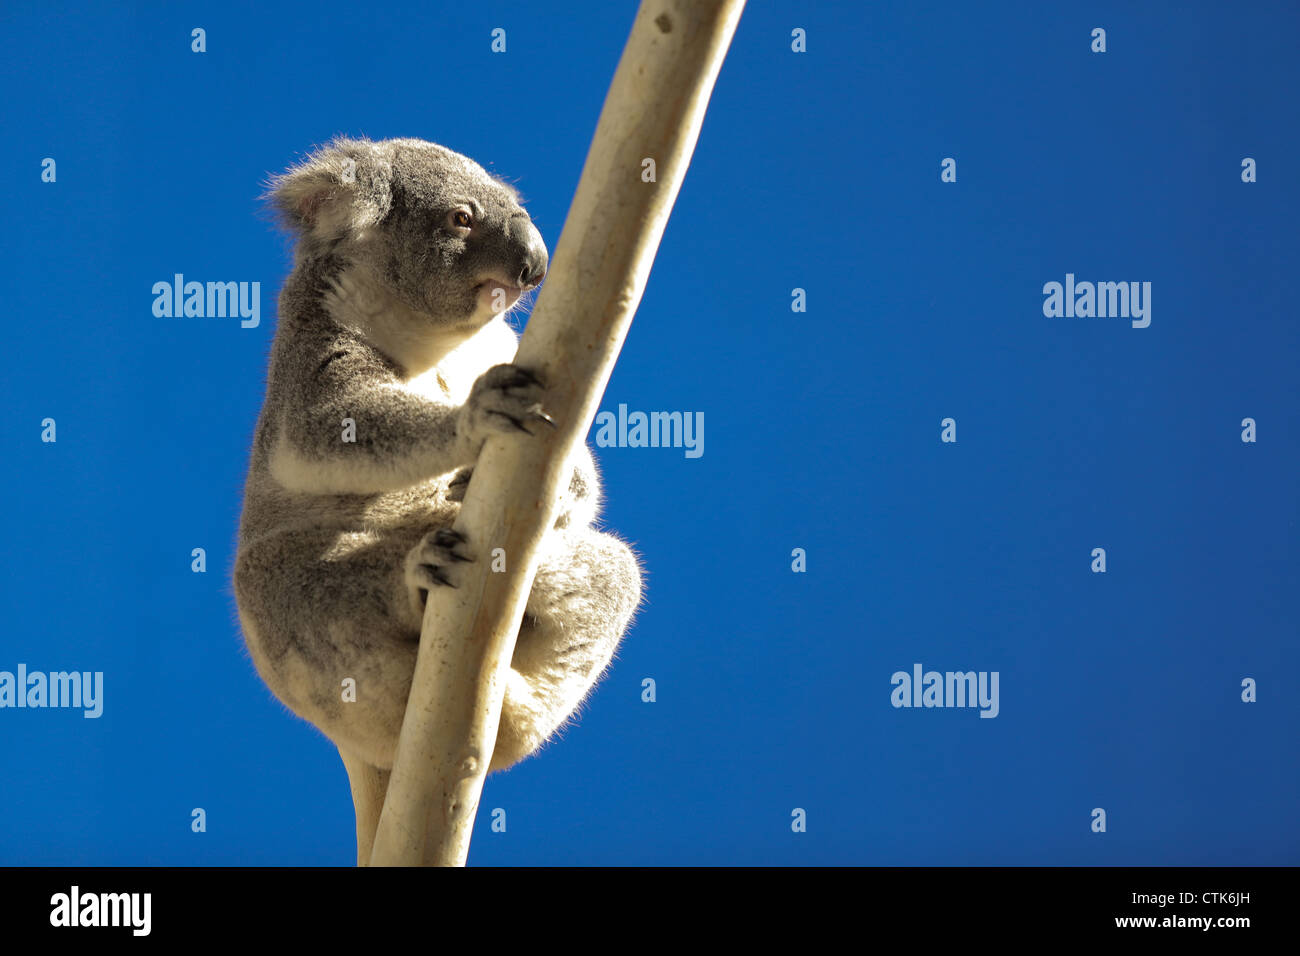 Koala grincheux on tree Photo Stock